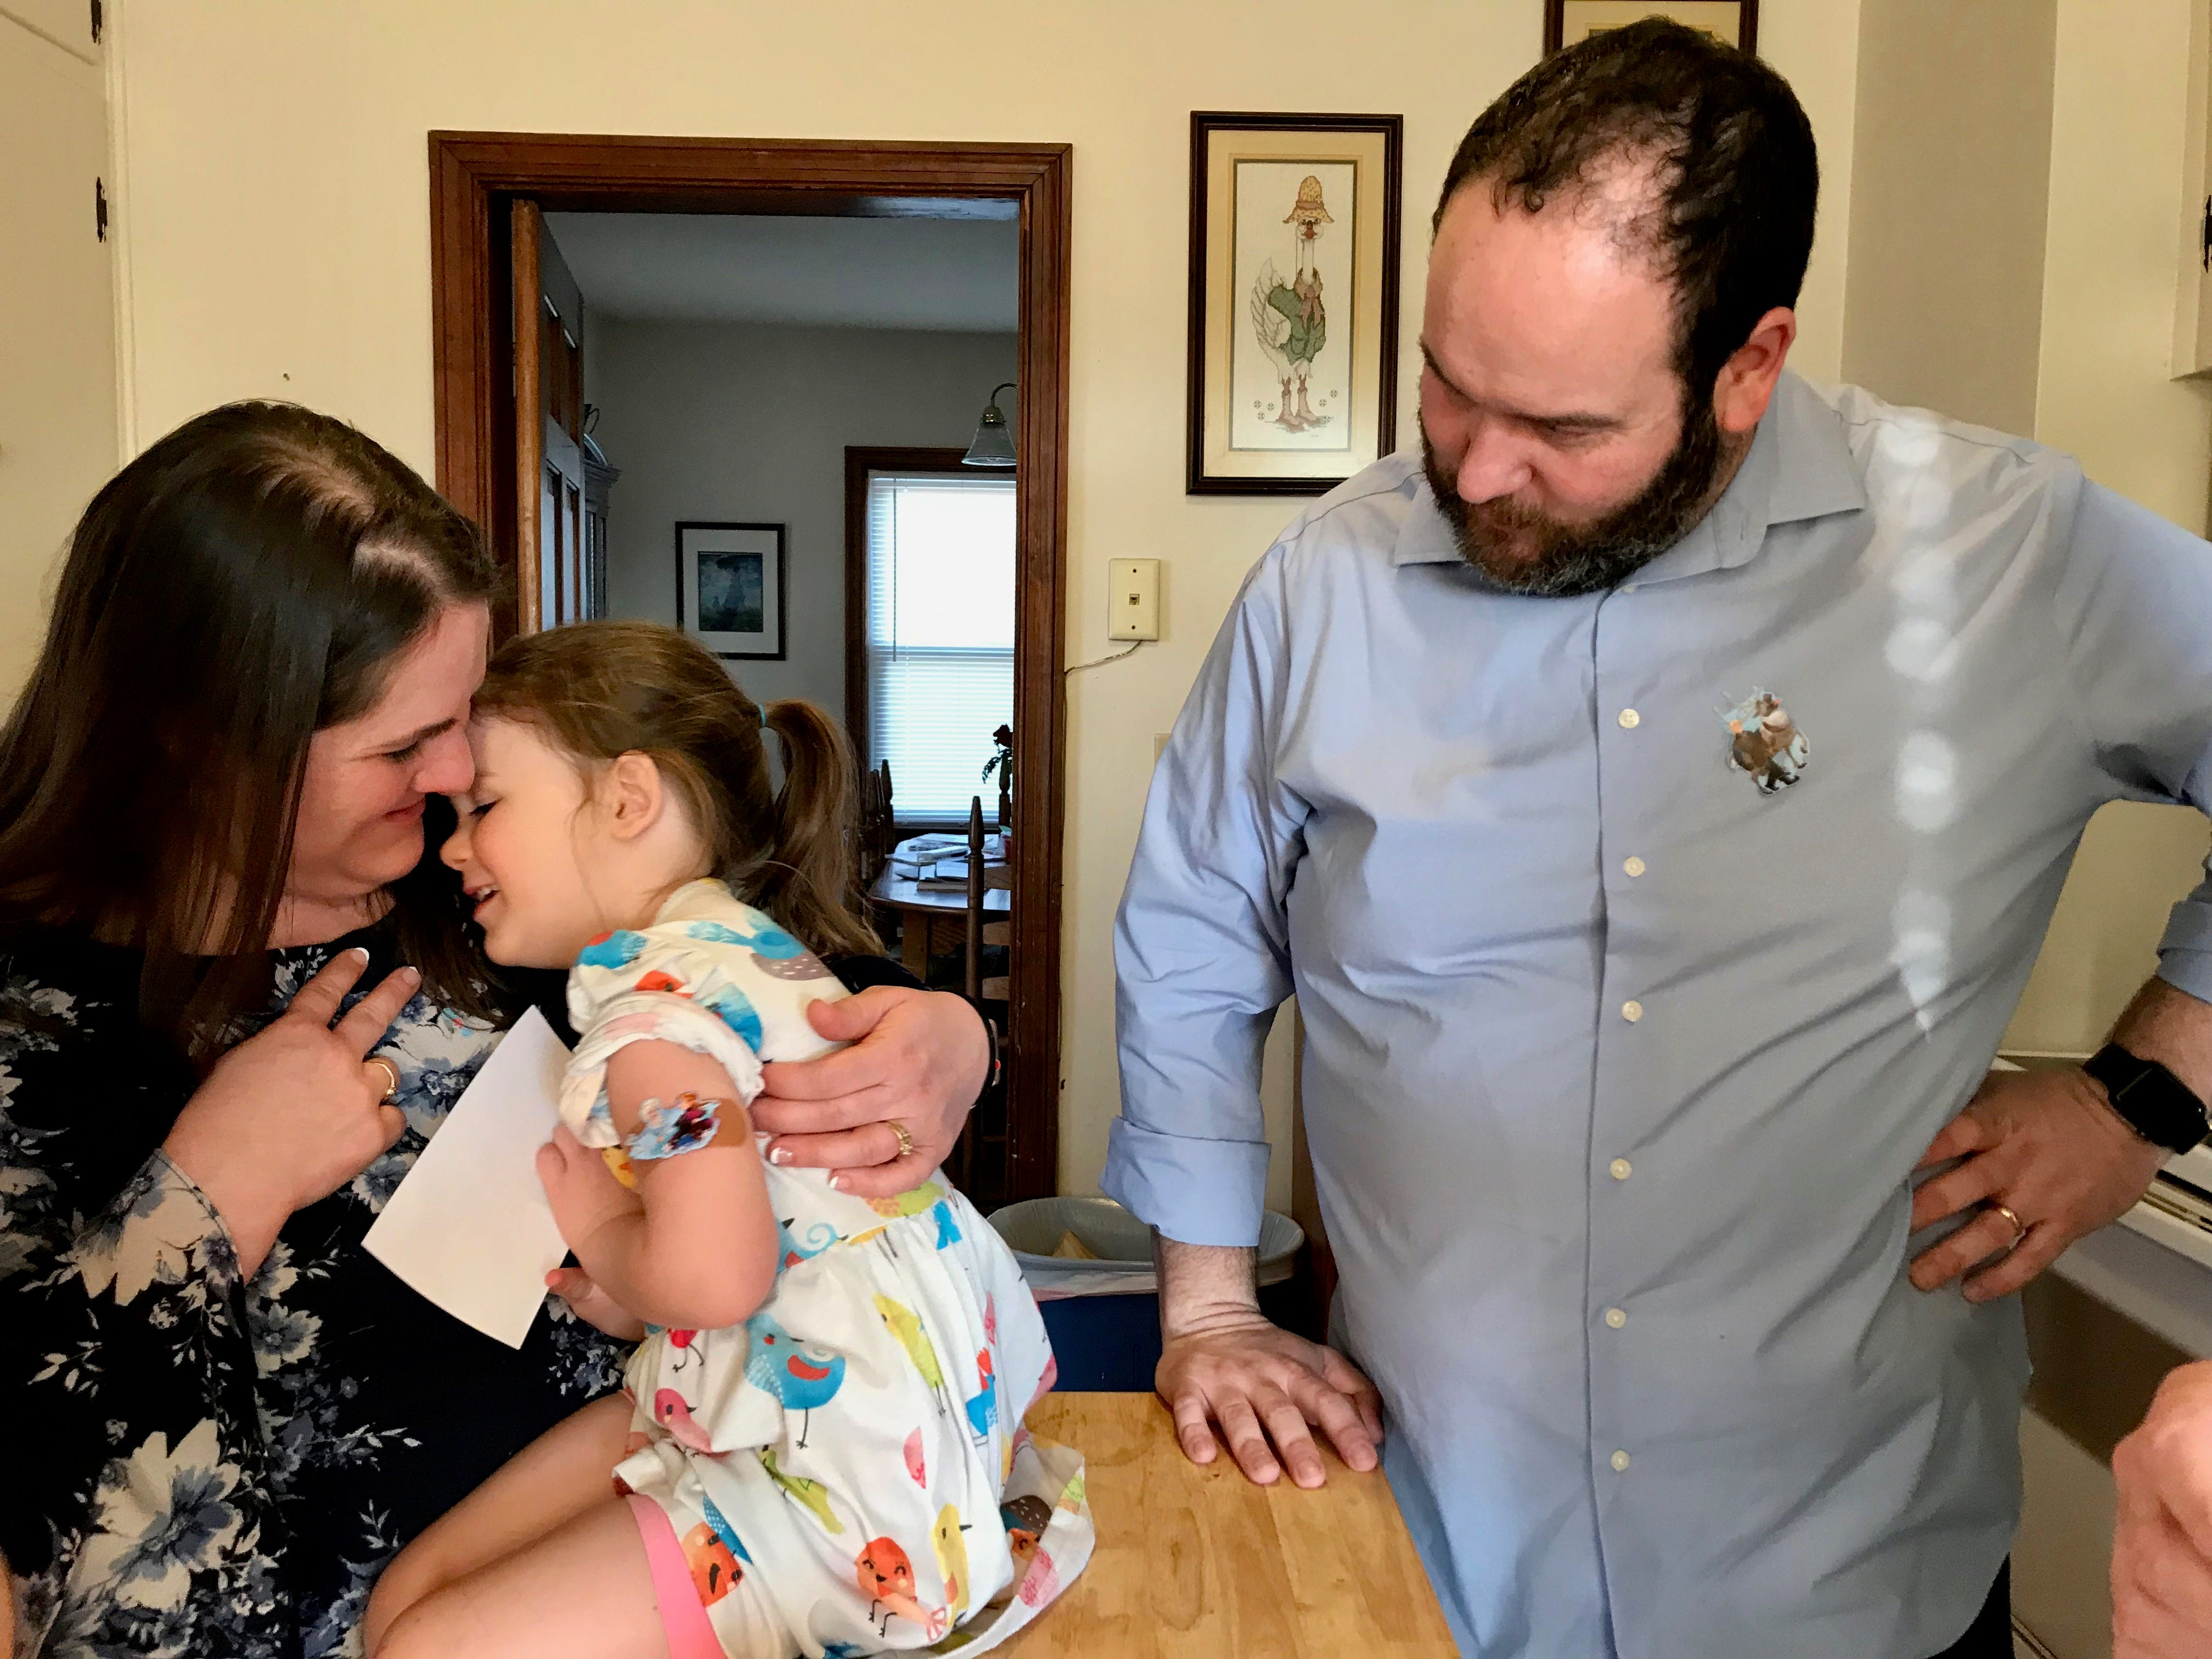 Mom and dad Amy and Brent Bussey with their daughter Rebecca, 3, after she received her monthly injection on Friday, March 15, 2019 in their home in Ladd, Virginia. Rebecca has the rare disease Systemic Juvenile Idiopathic Arthritis and gets a monthly dose of the biologic medication Ilaris.